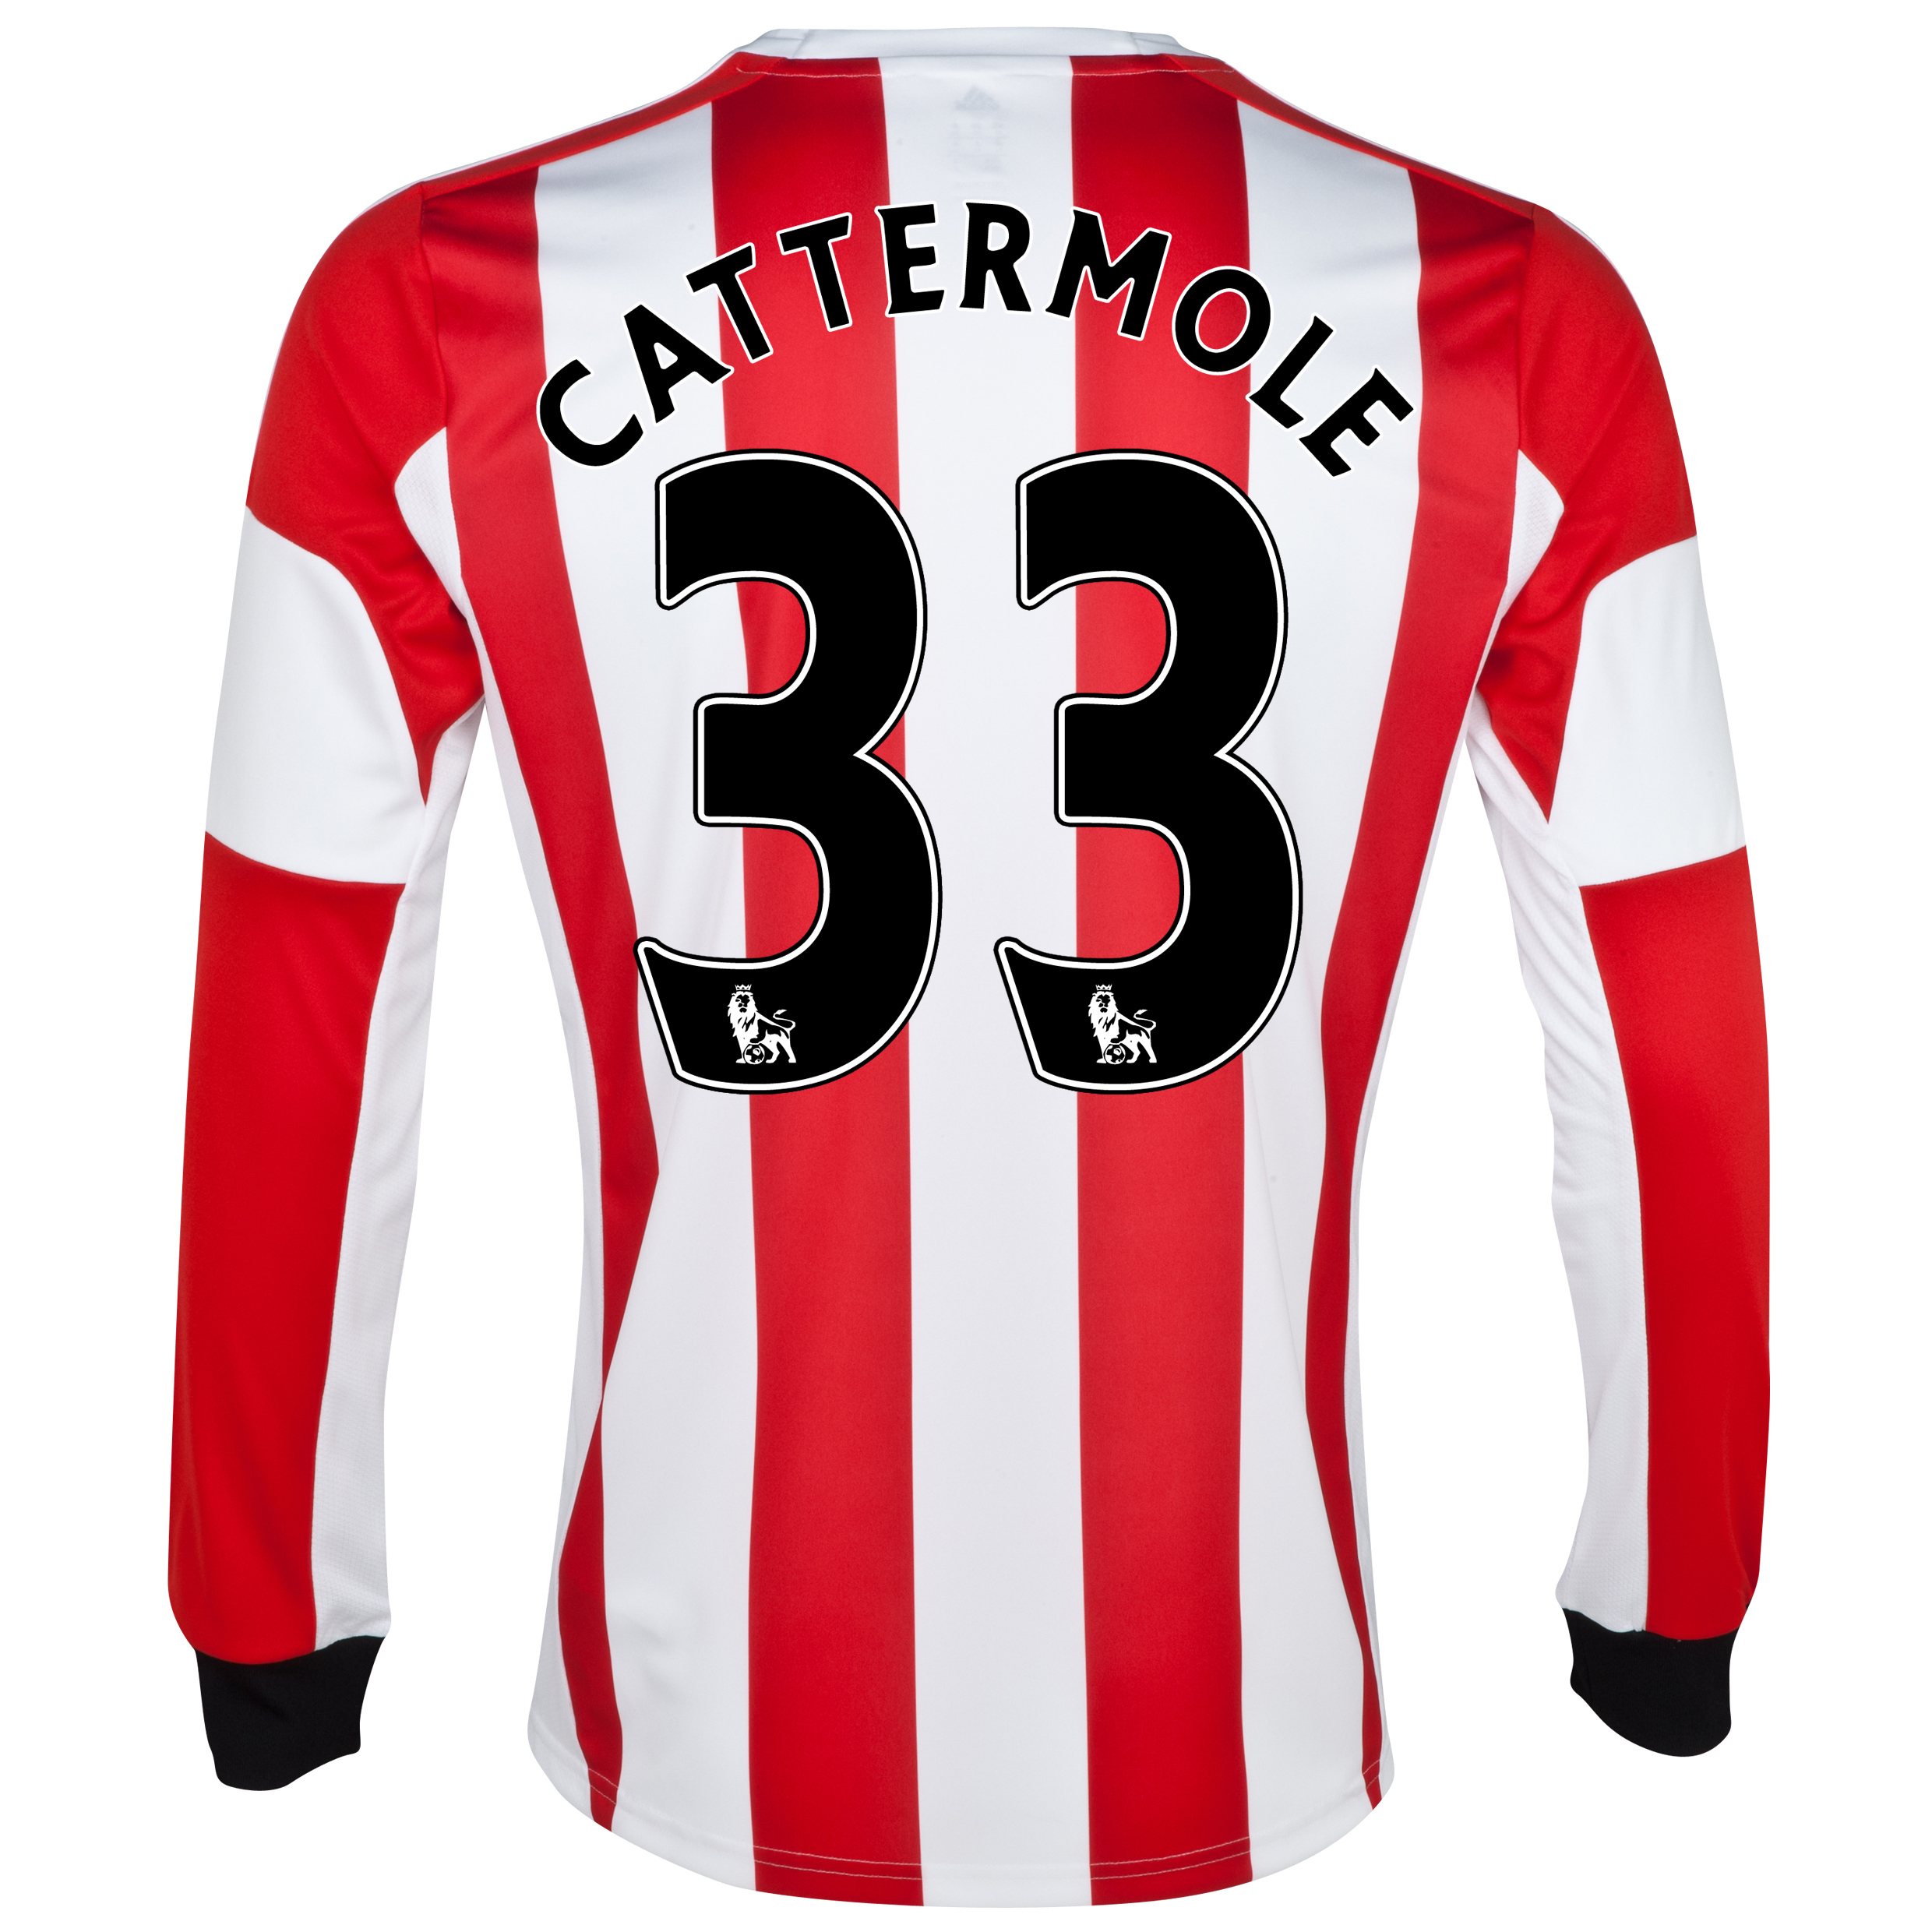 Sunderland Home Shirt 2013/14 - Long Sleeved with Cattermole 33 printing